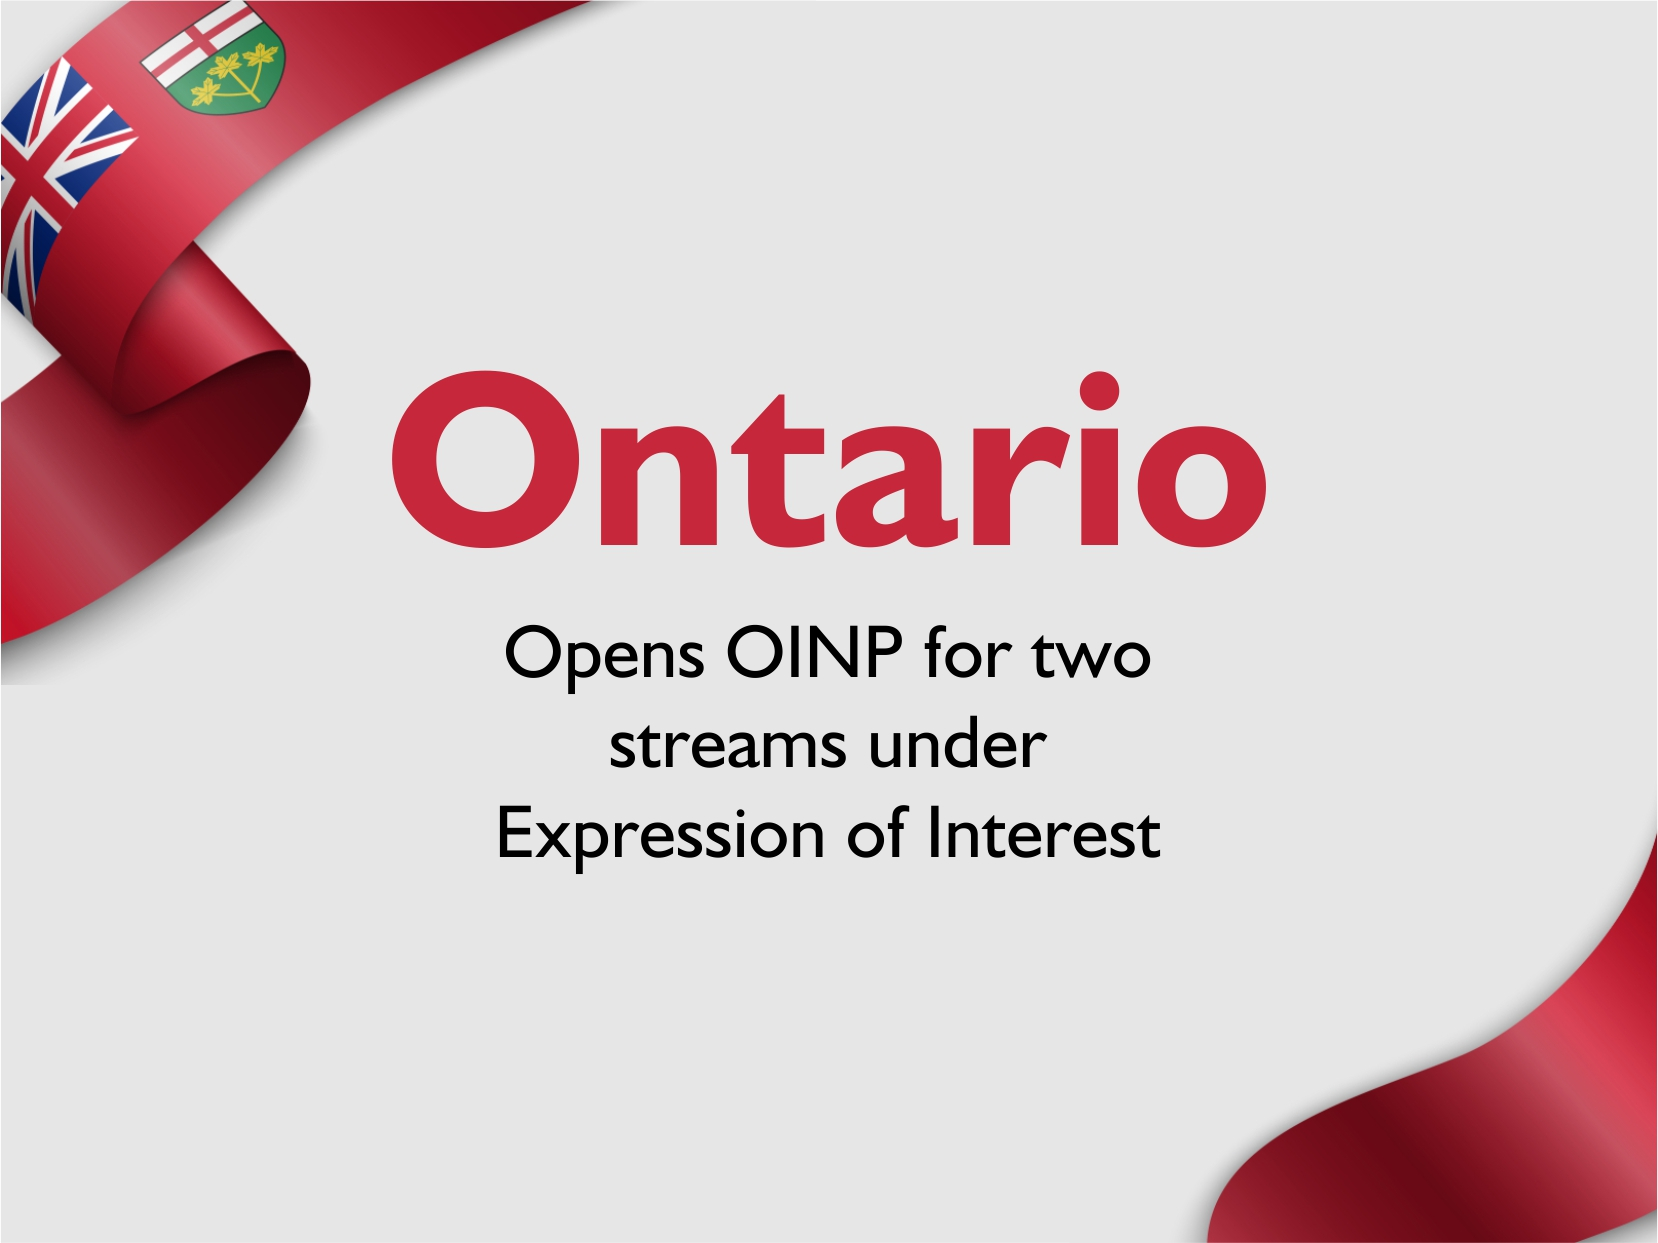 Ontario Opens OINP for two streams under Expression of Interest